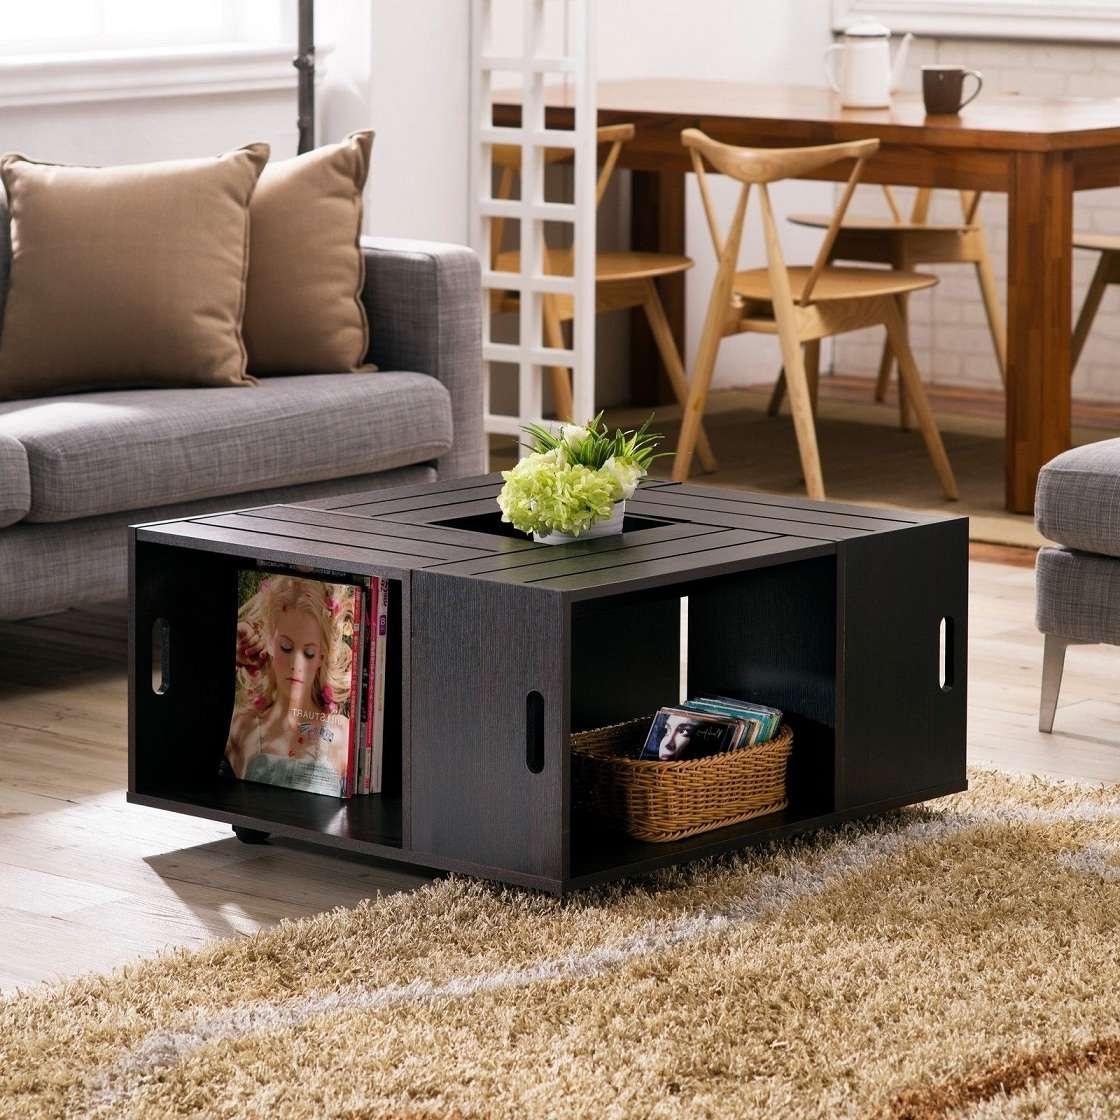 Interesting Decorative Of Square Coffee Tables With Storage – Tall In Well Known Round Coffee Tables With Storages (View 9 of 20)